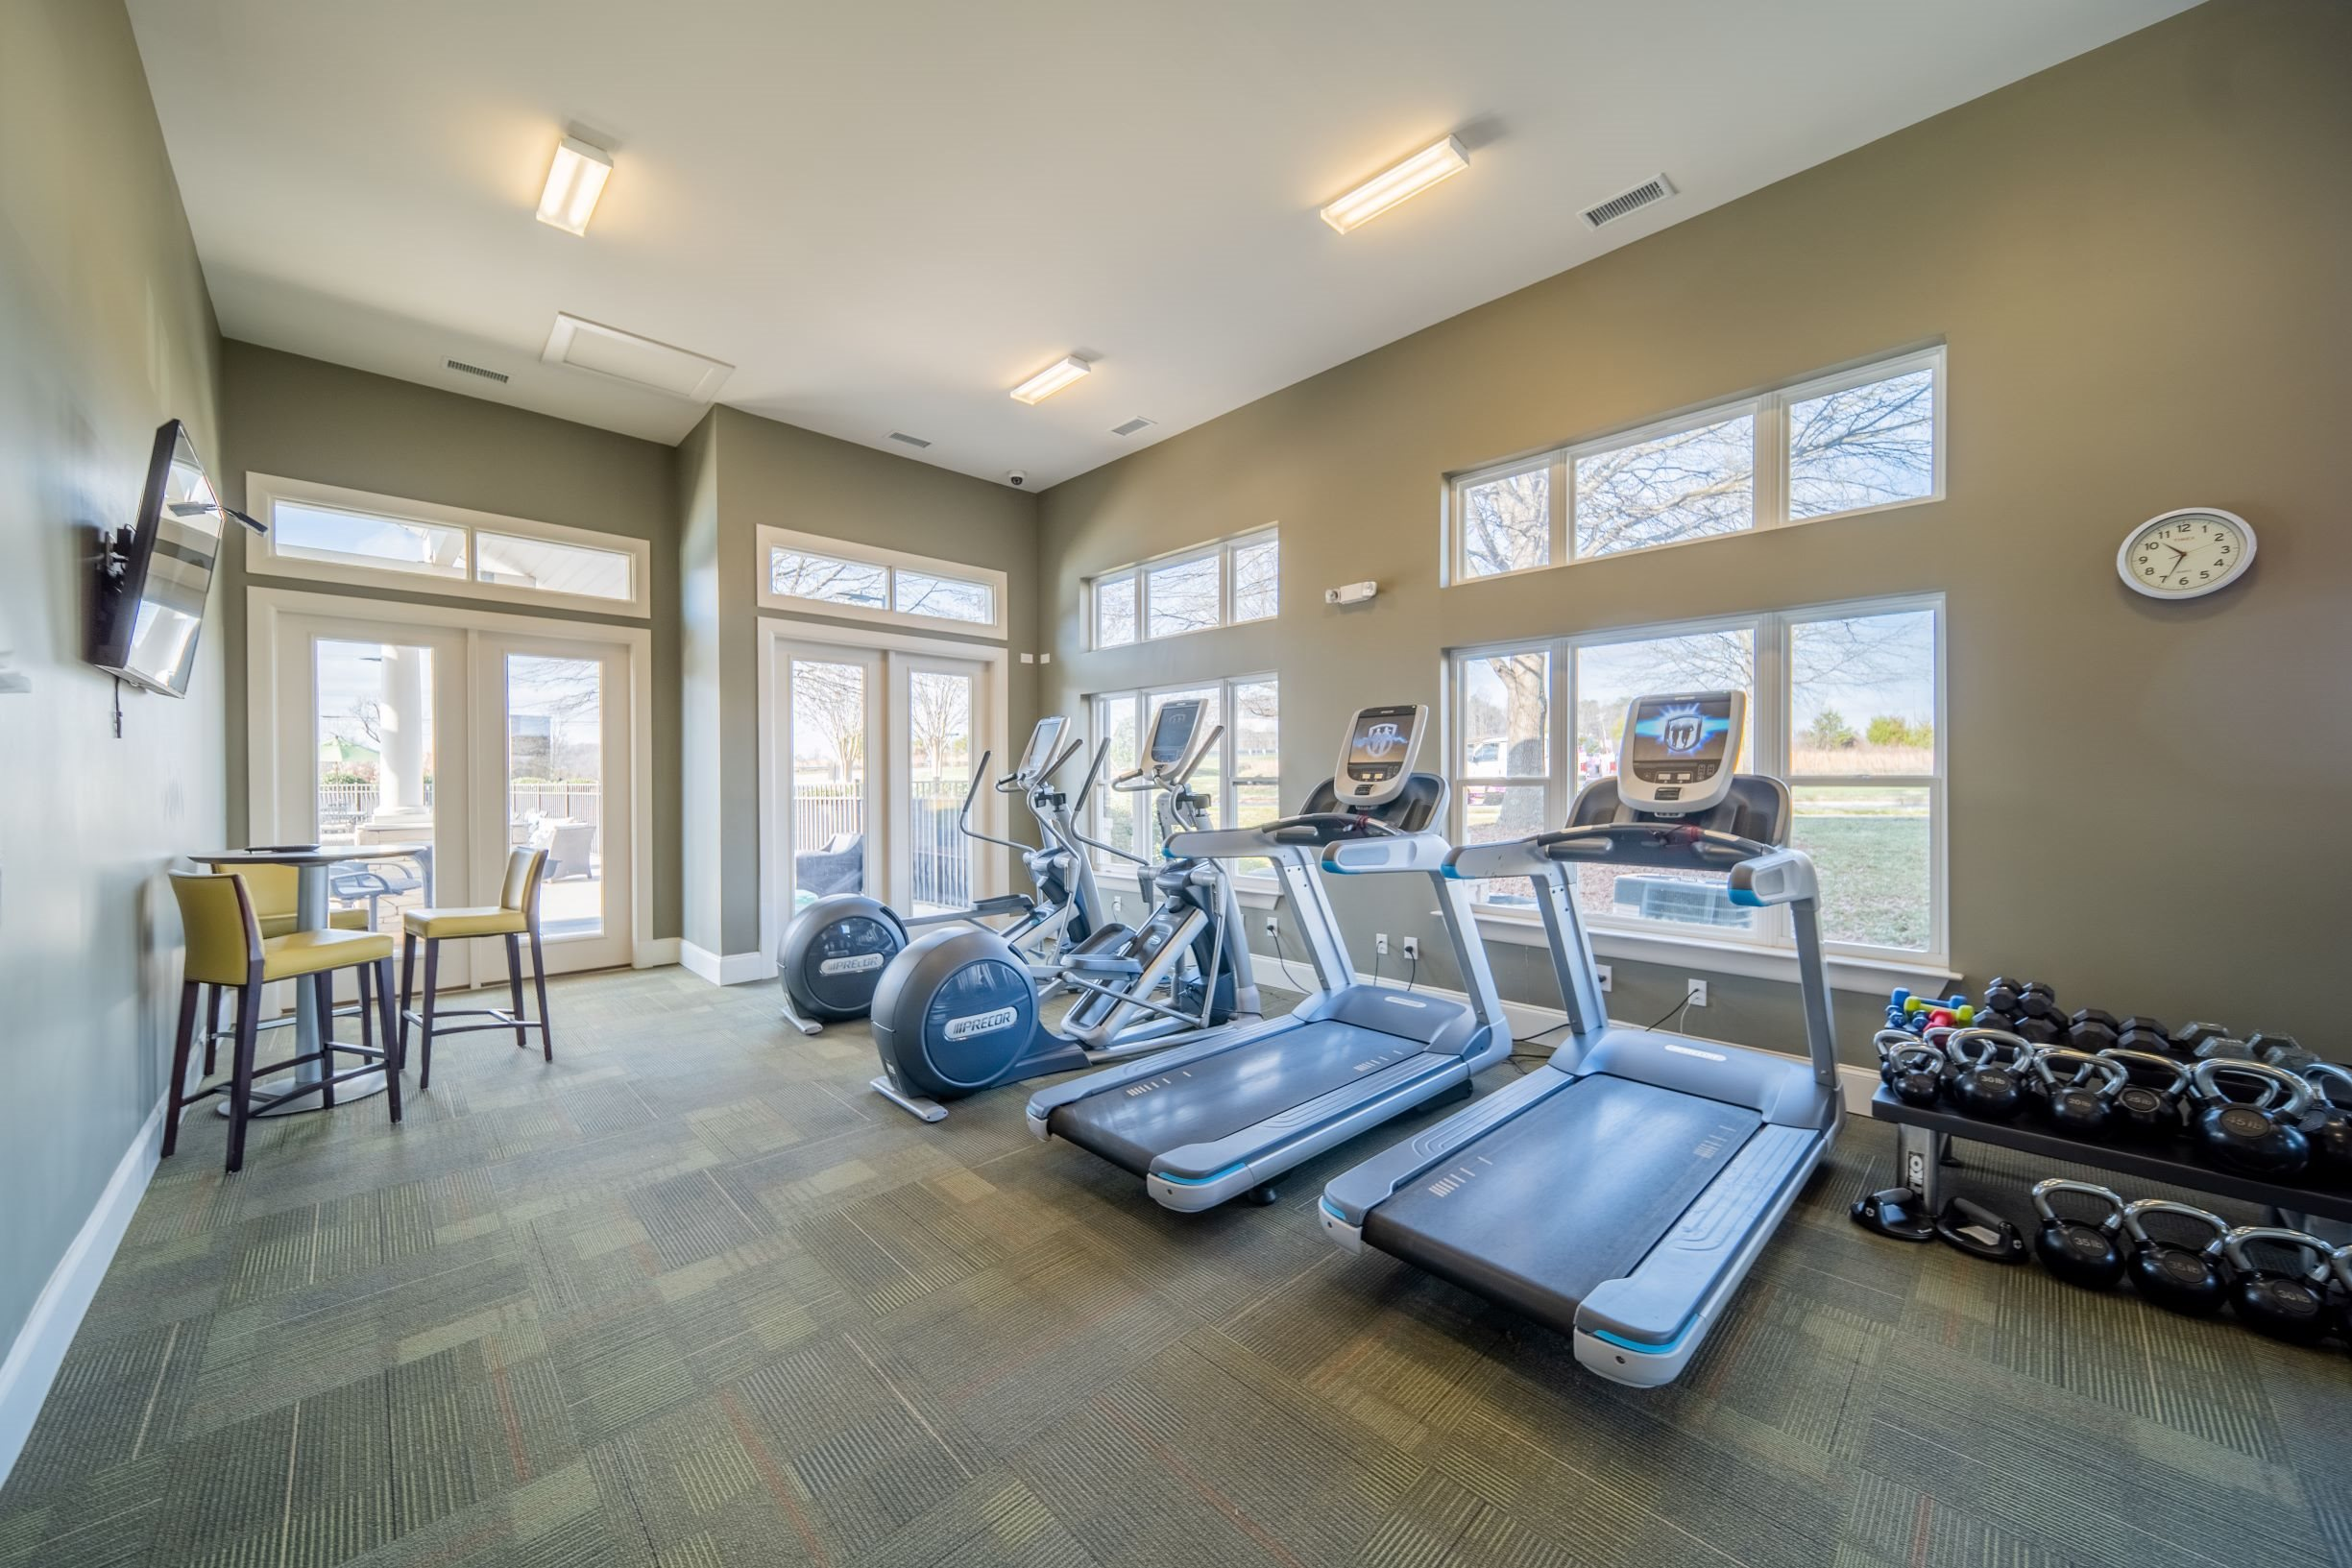 Fitness center at Piedmont Place apartments in Greensboro, NC